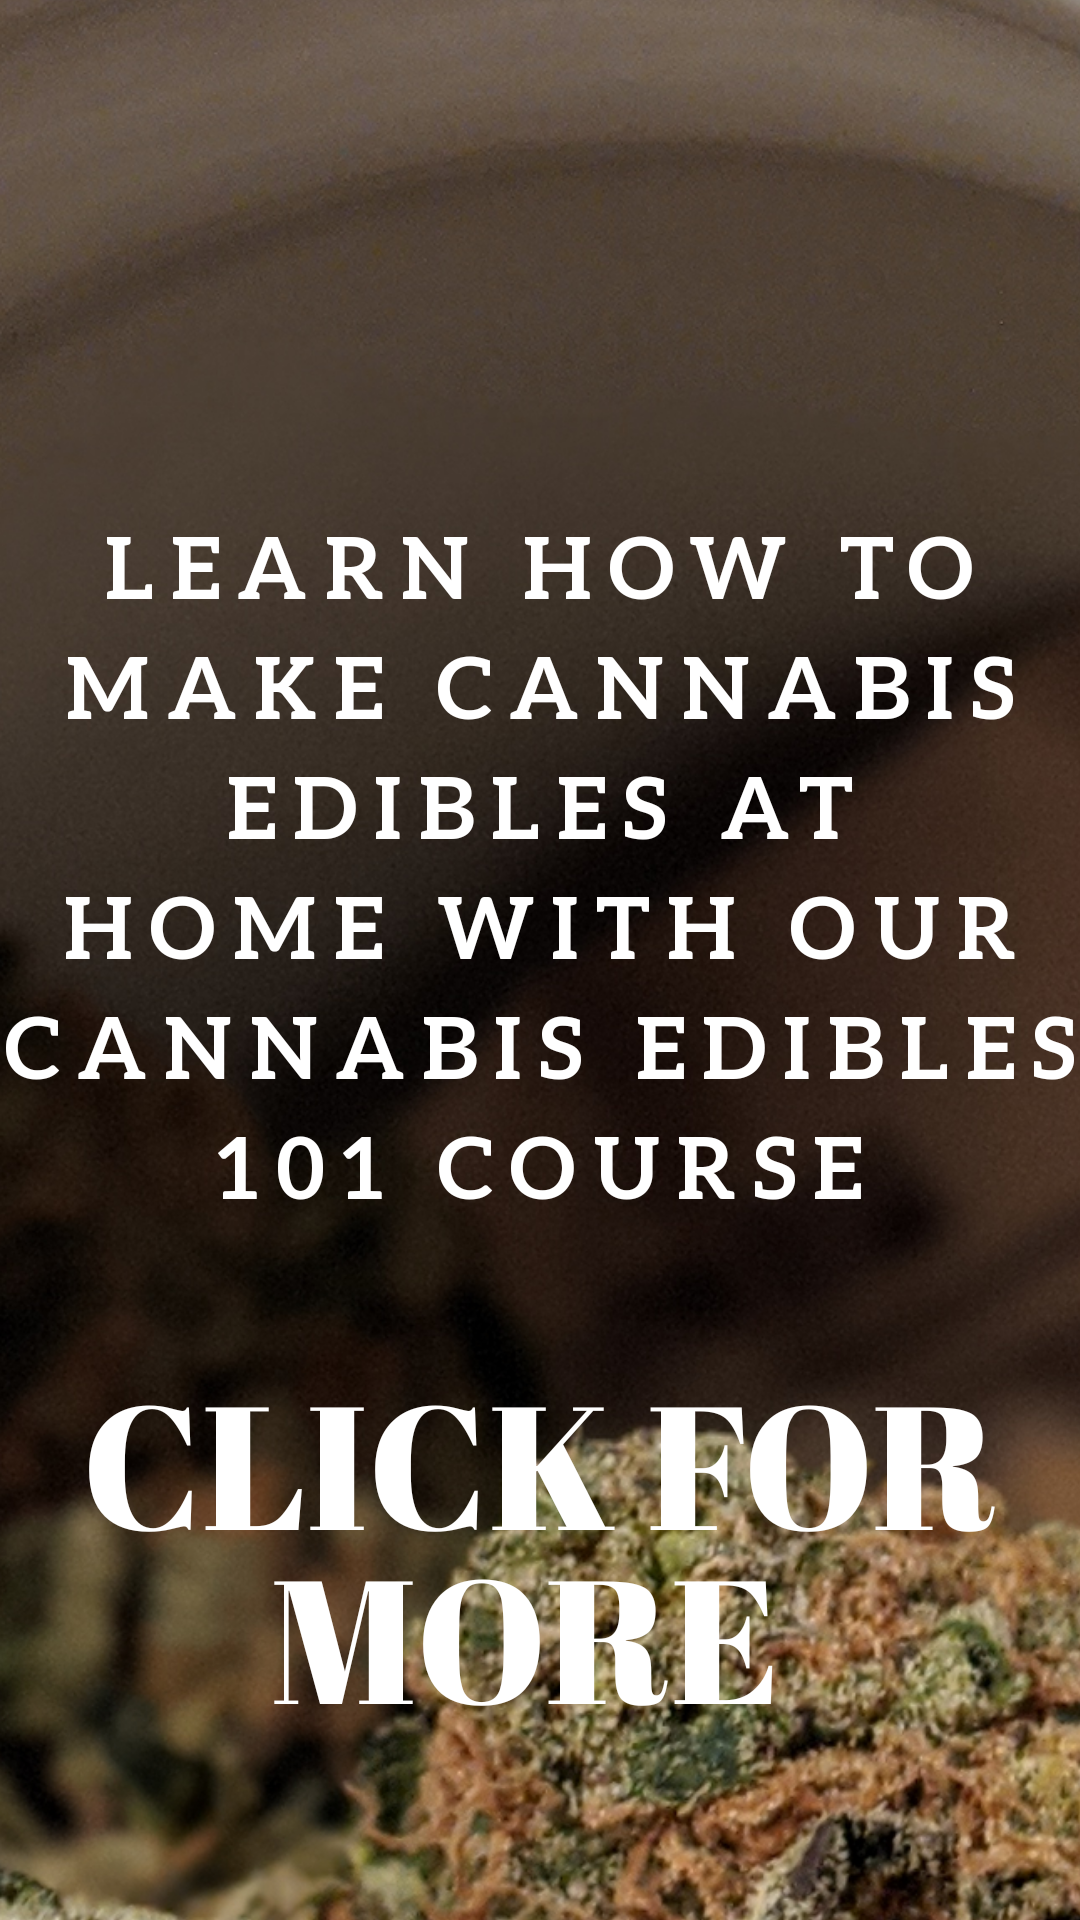 cannabis edibles course, online cannabis courses, budtender courses, how to make edibles course, cannabis edibles medical course, how to make cannabutter